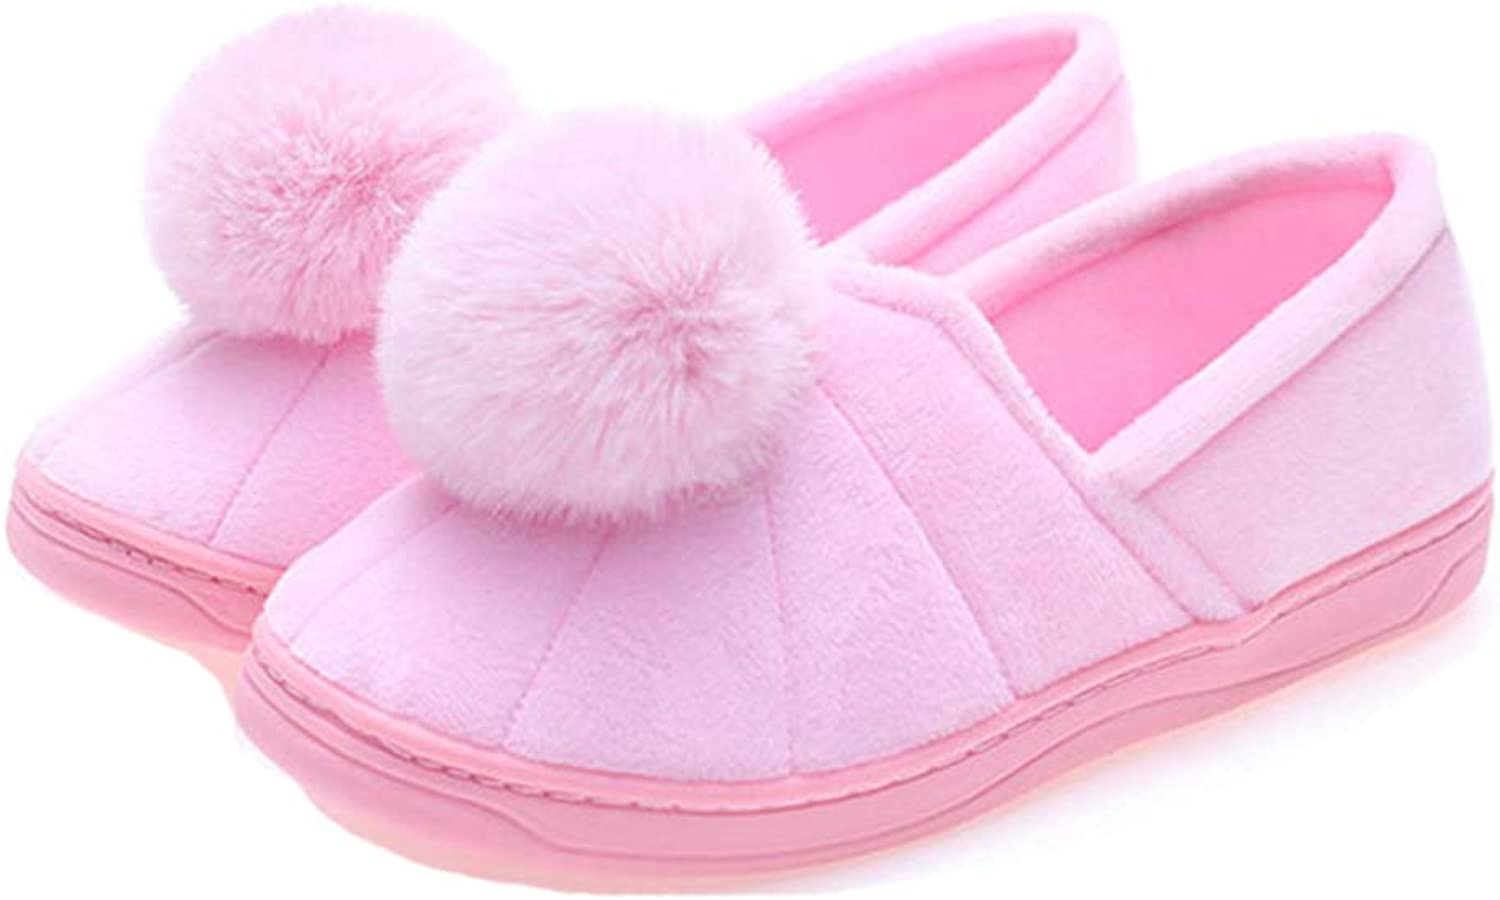 Share Maison Women House Indoor Slippers Household Summer Anti-Slip shoes for Pregnant Edema Yoga shoes